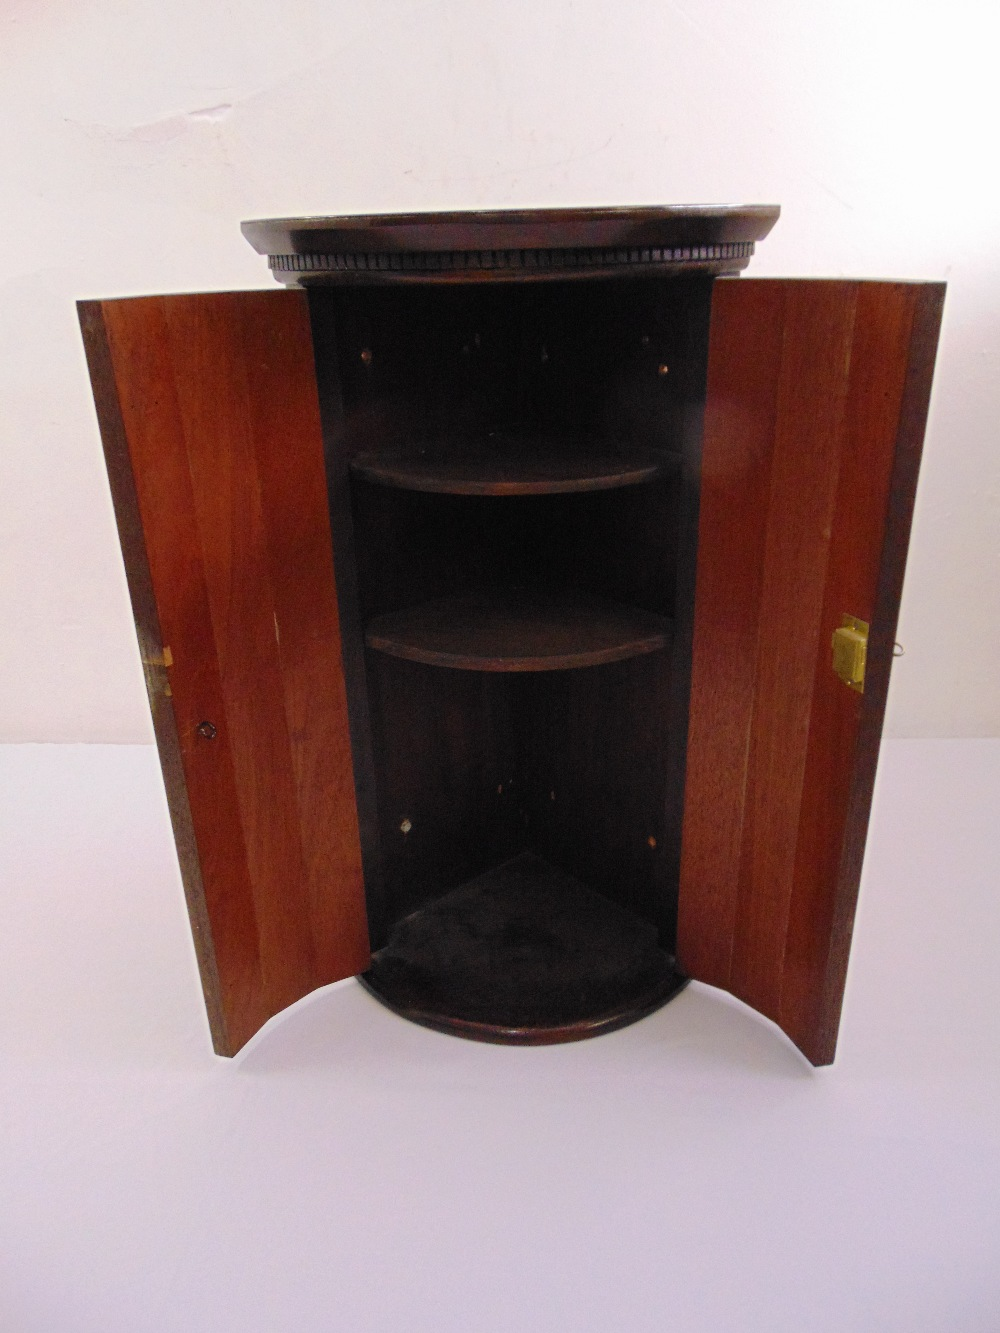 Lot 25 - A mahogany wall hanging corner cabinet with brass hinges and escutcheon